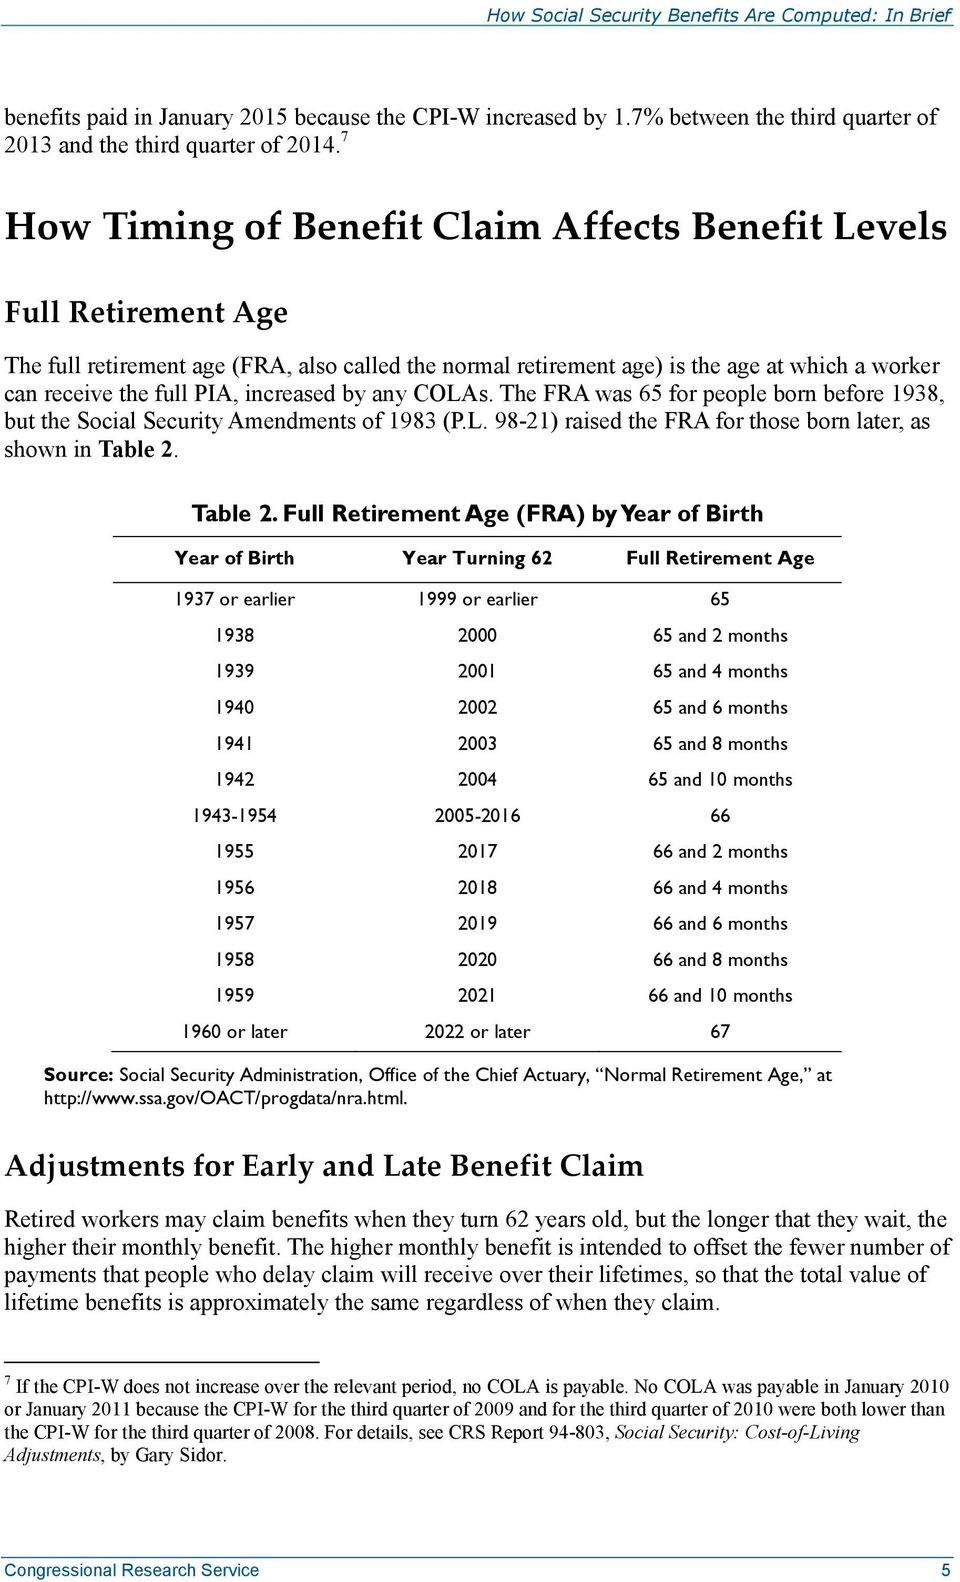 increased by any COLAs. The FRA was 65 for people born before 1938, but the Social Security Amendments of 1983 (P.L. 98-21) raised the FRA for those born later, as shown in Table 2.